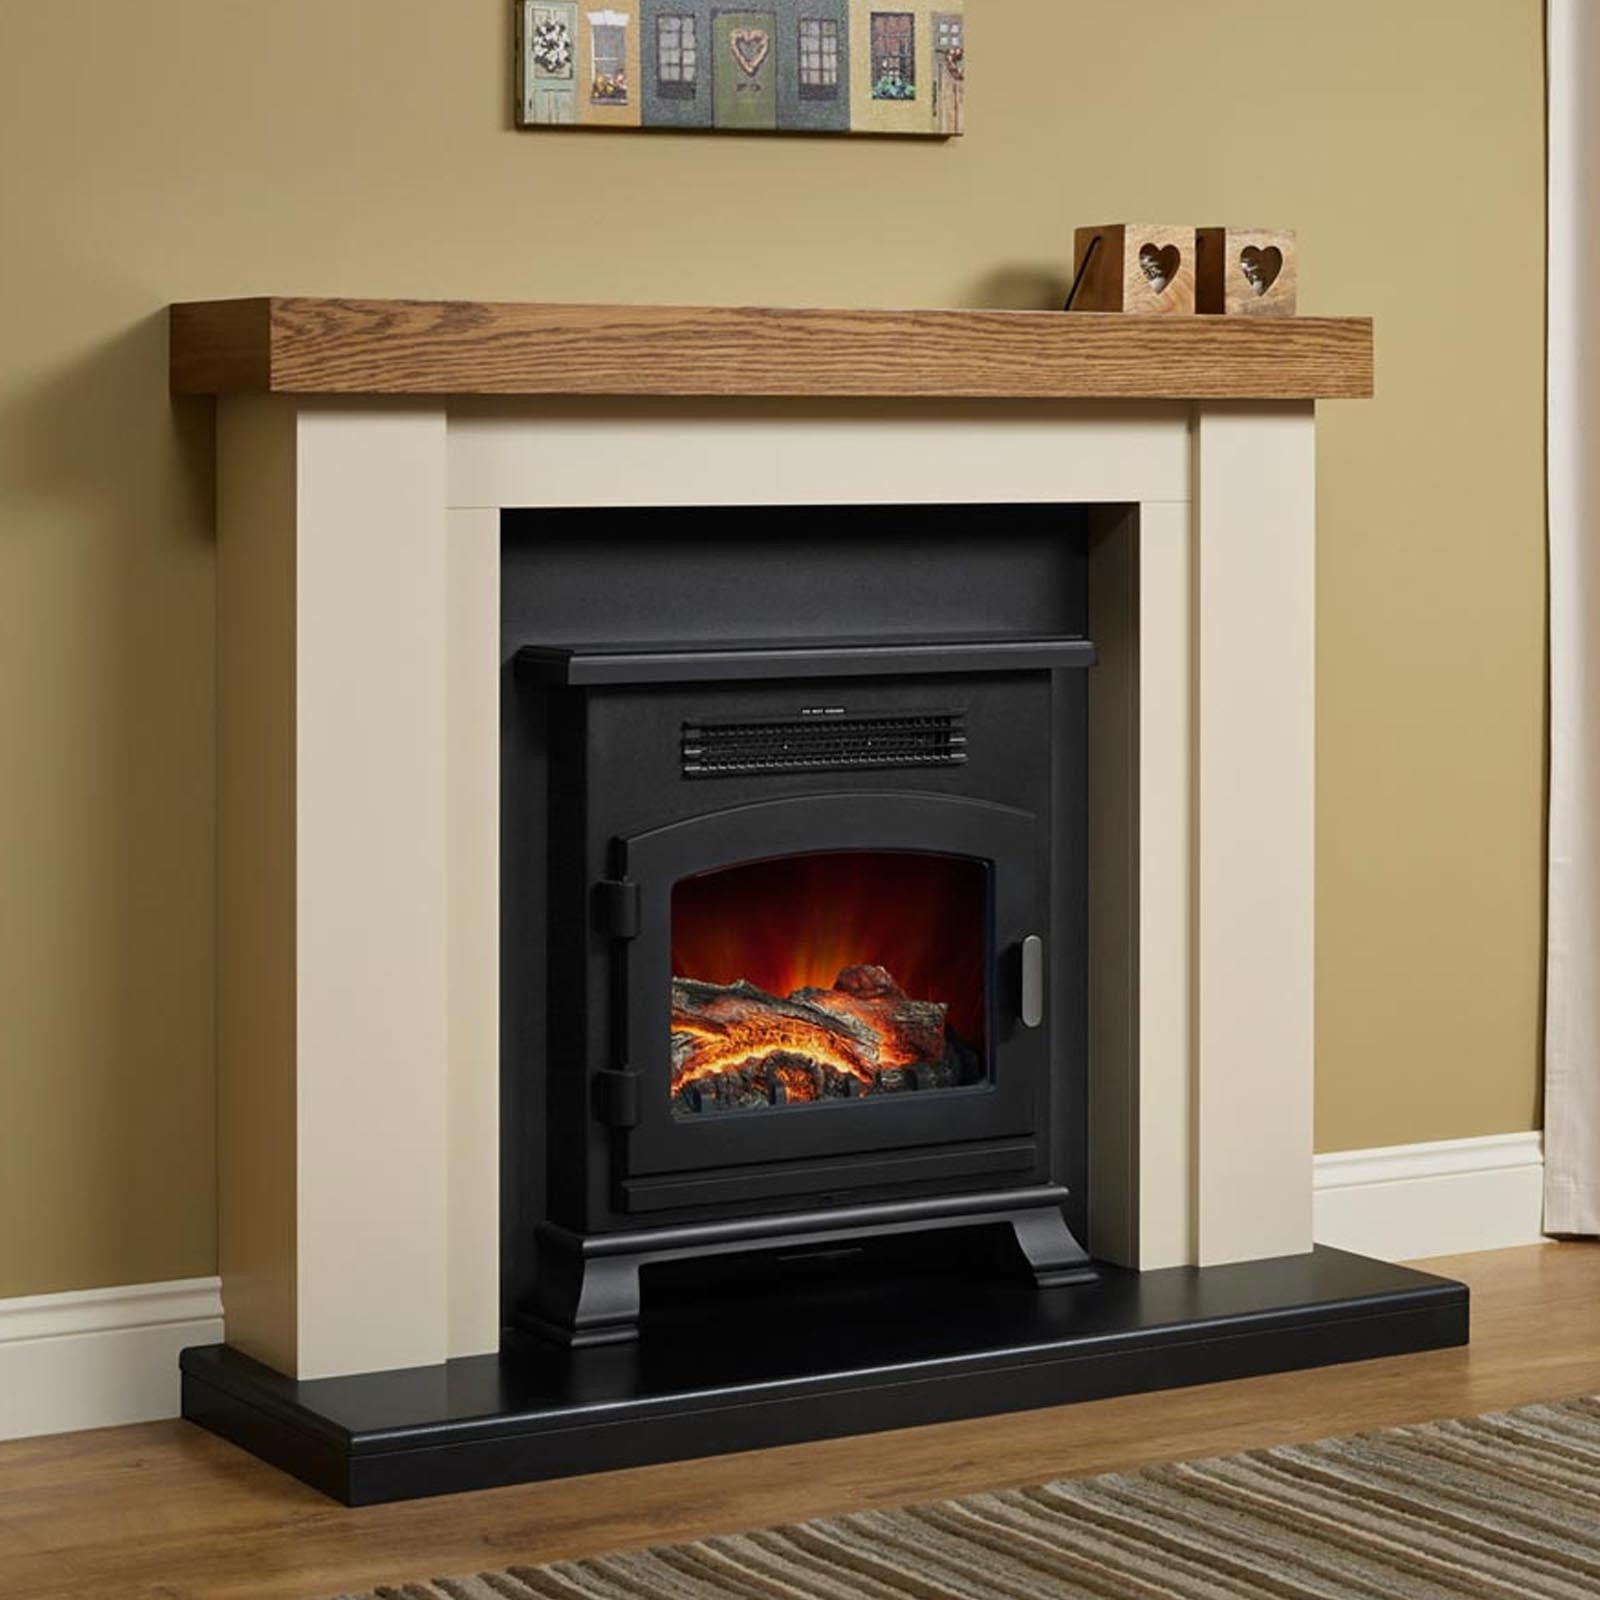 Fireplaces 4 Life will offer you top quality products at affordable prices. Call today on 01274 871010 to find out more. product